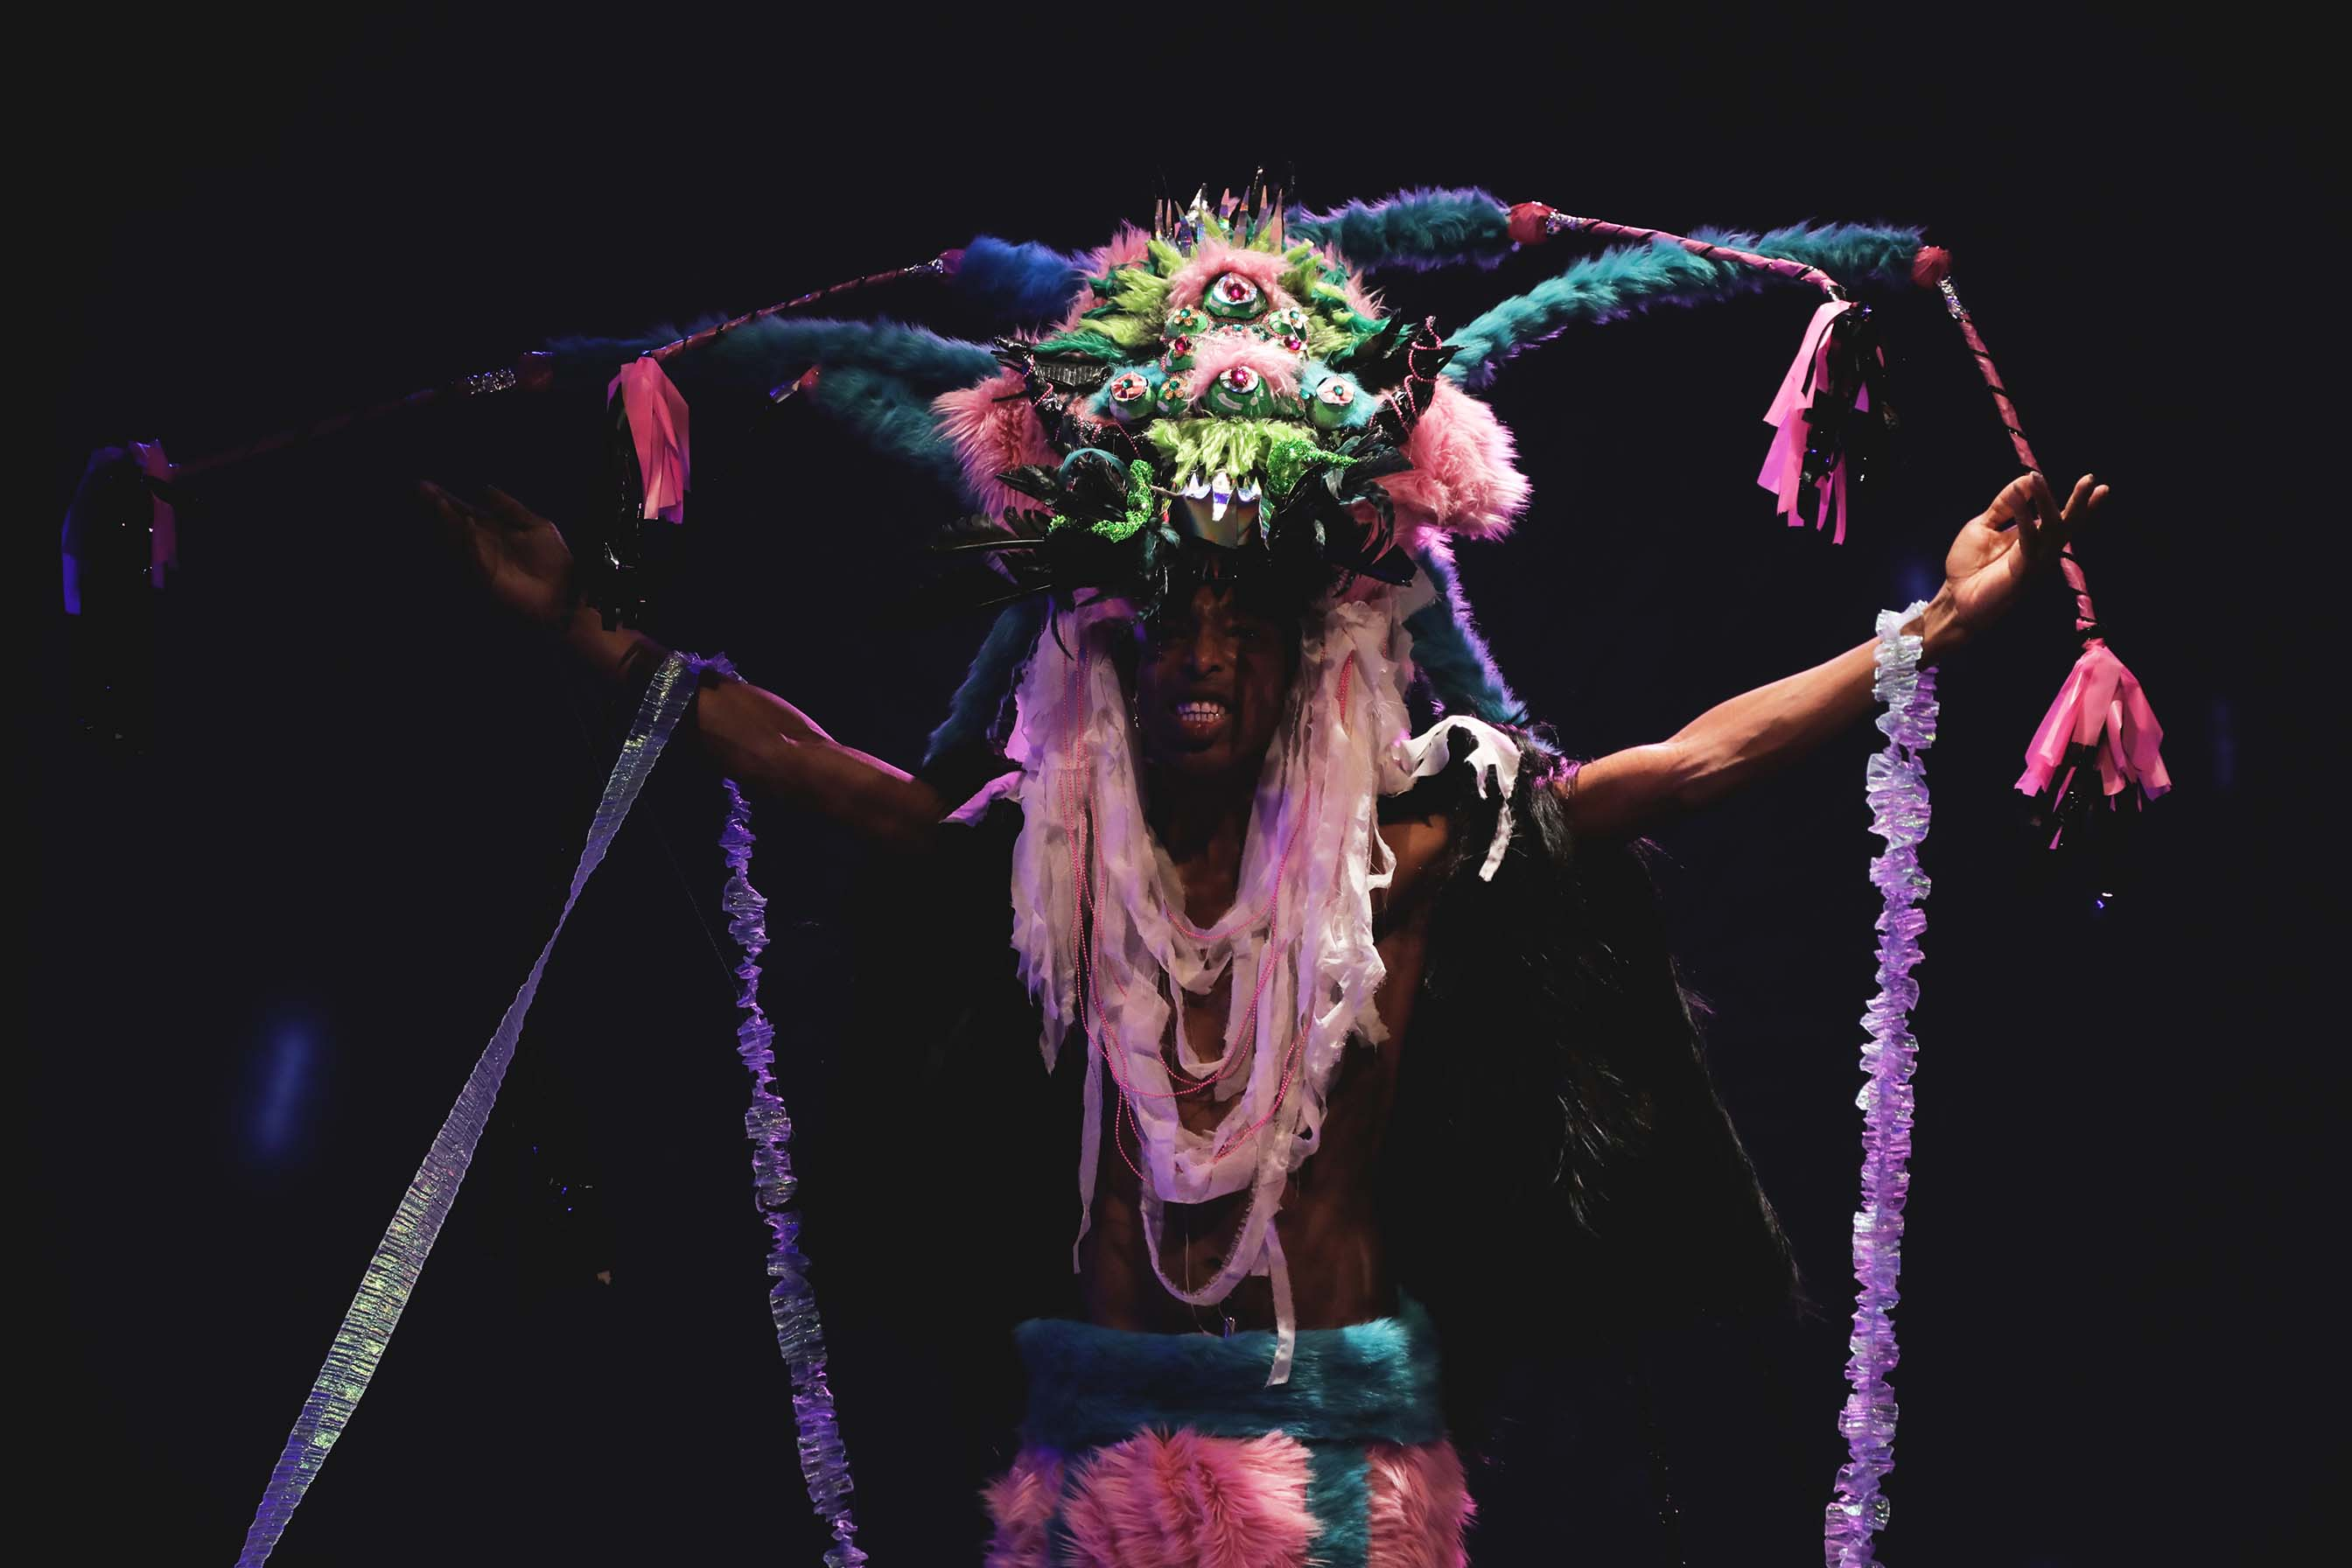 person wearing a colorful headpiece onstage